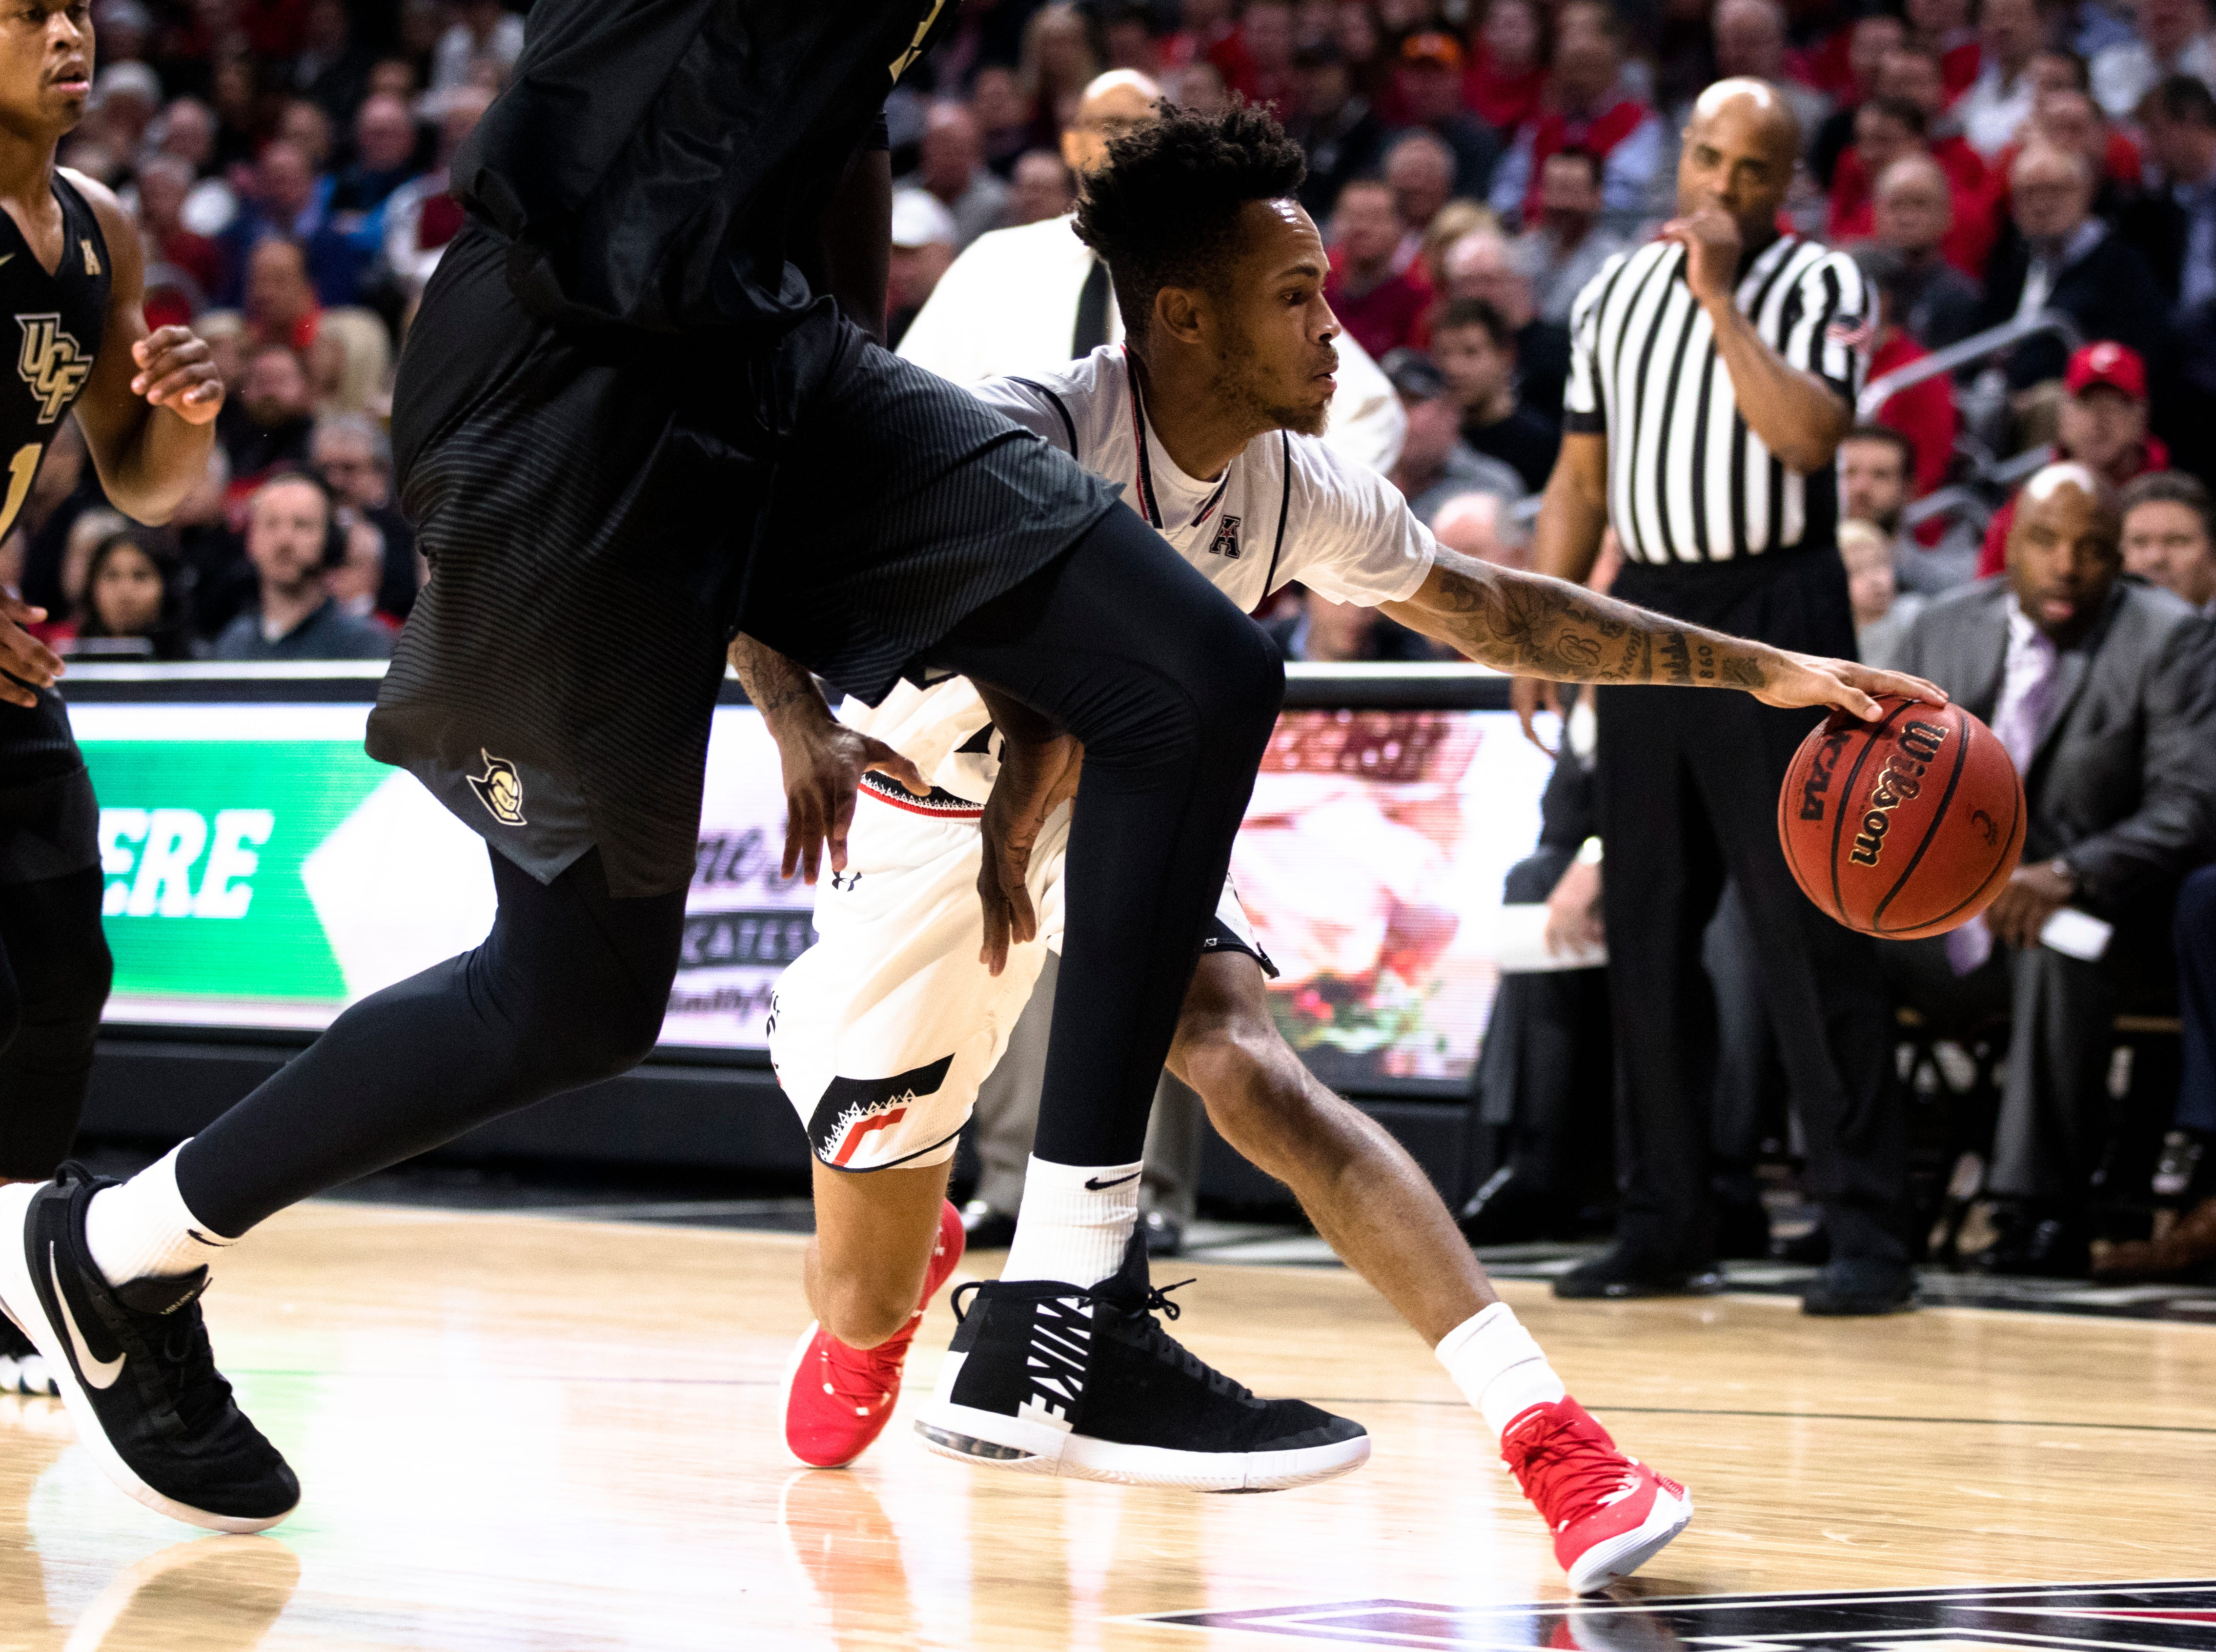 Cincinnati Bearcats guard Cane Broome (15) drives on UCF Knights center Tacko Fall (24) in the first half of the NCAA men's basketball game between Cincinnati Bearcats and UCF Knights on Thursday, Feb. 21, 2019, at Fifth Third Arena in Cincinnati.